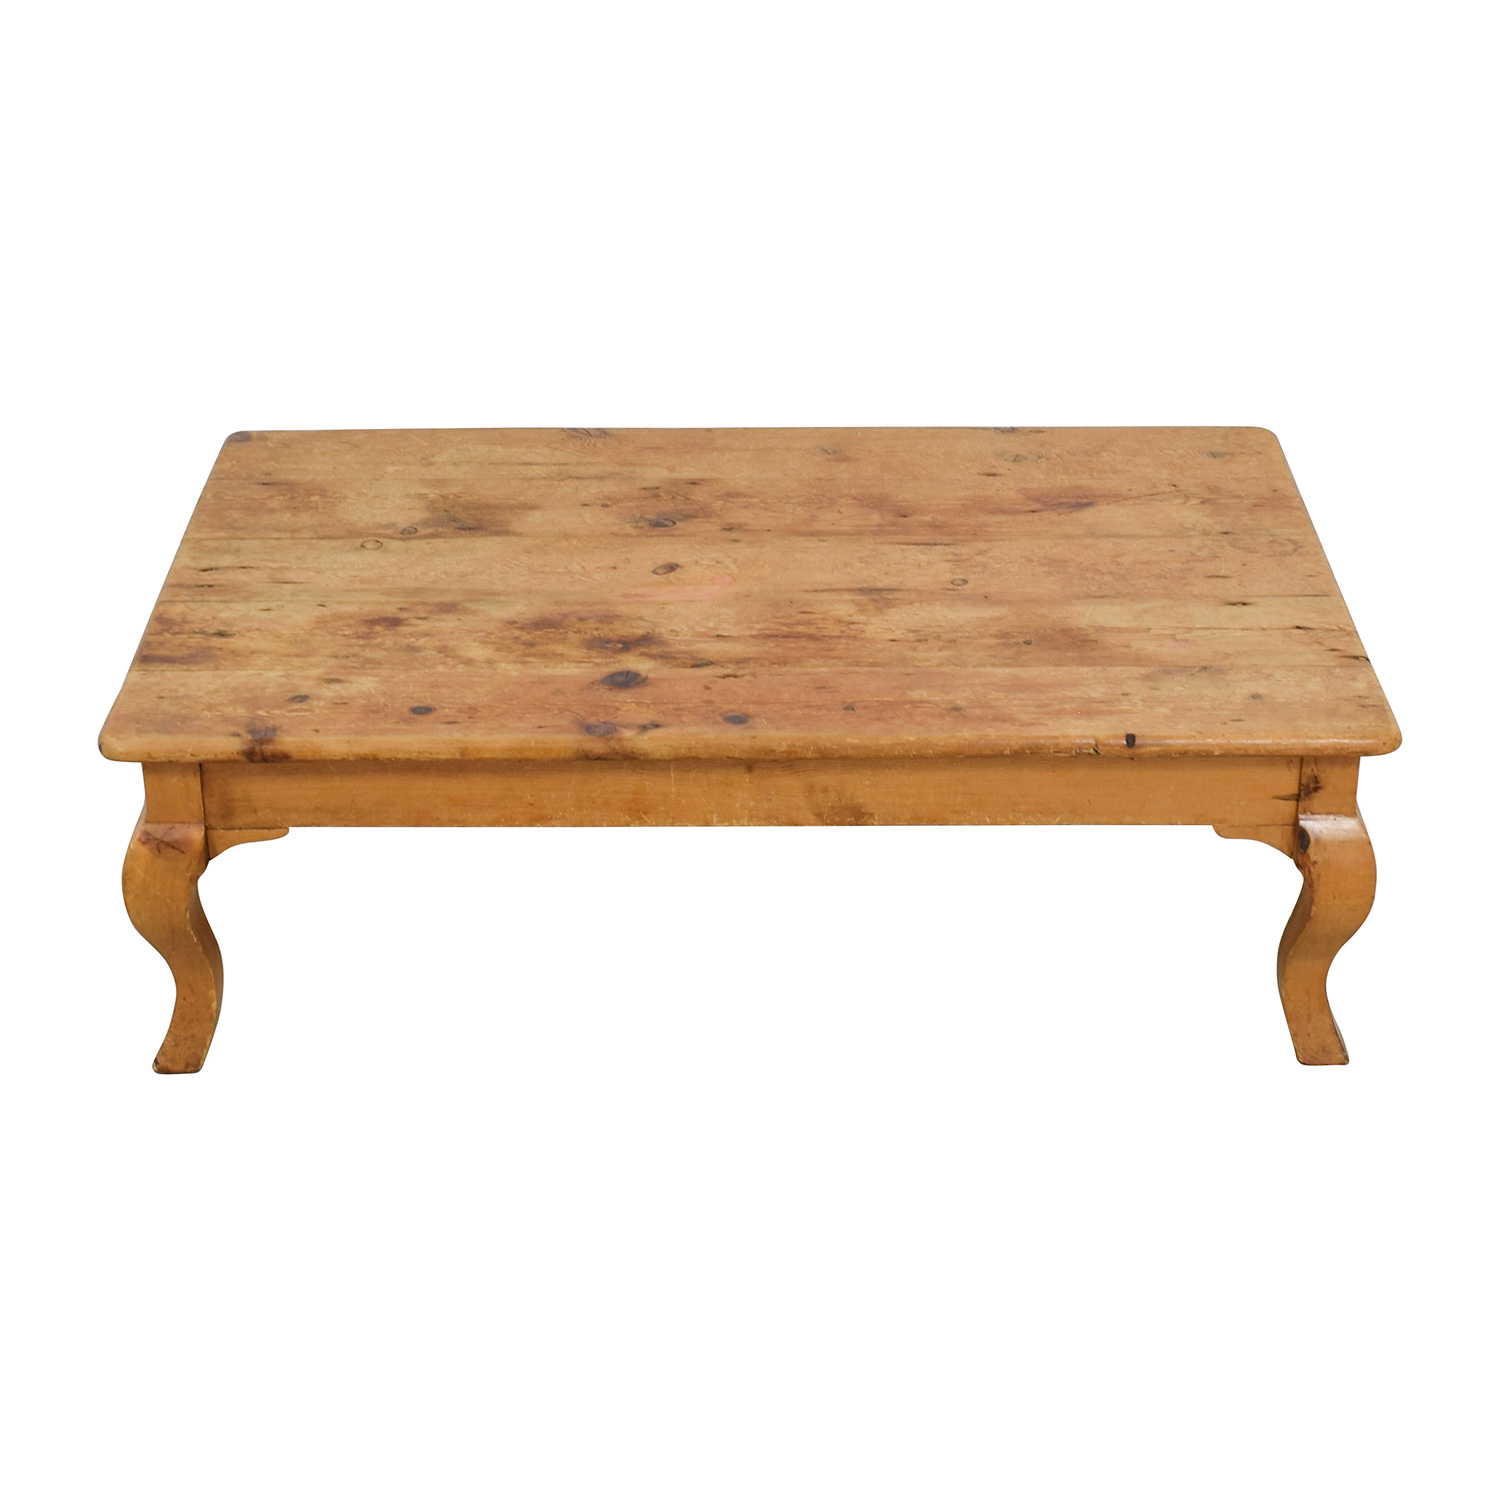 Custom Hand Carved Large Natural Wood Coffee Table For Sale